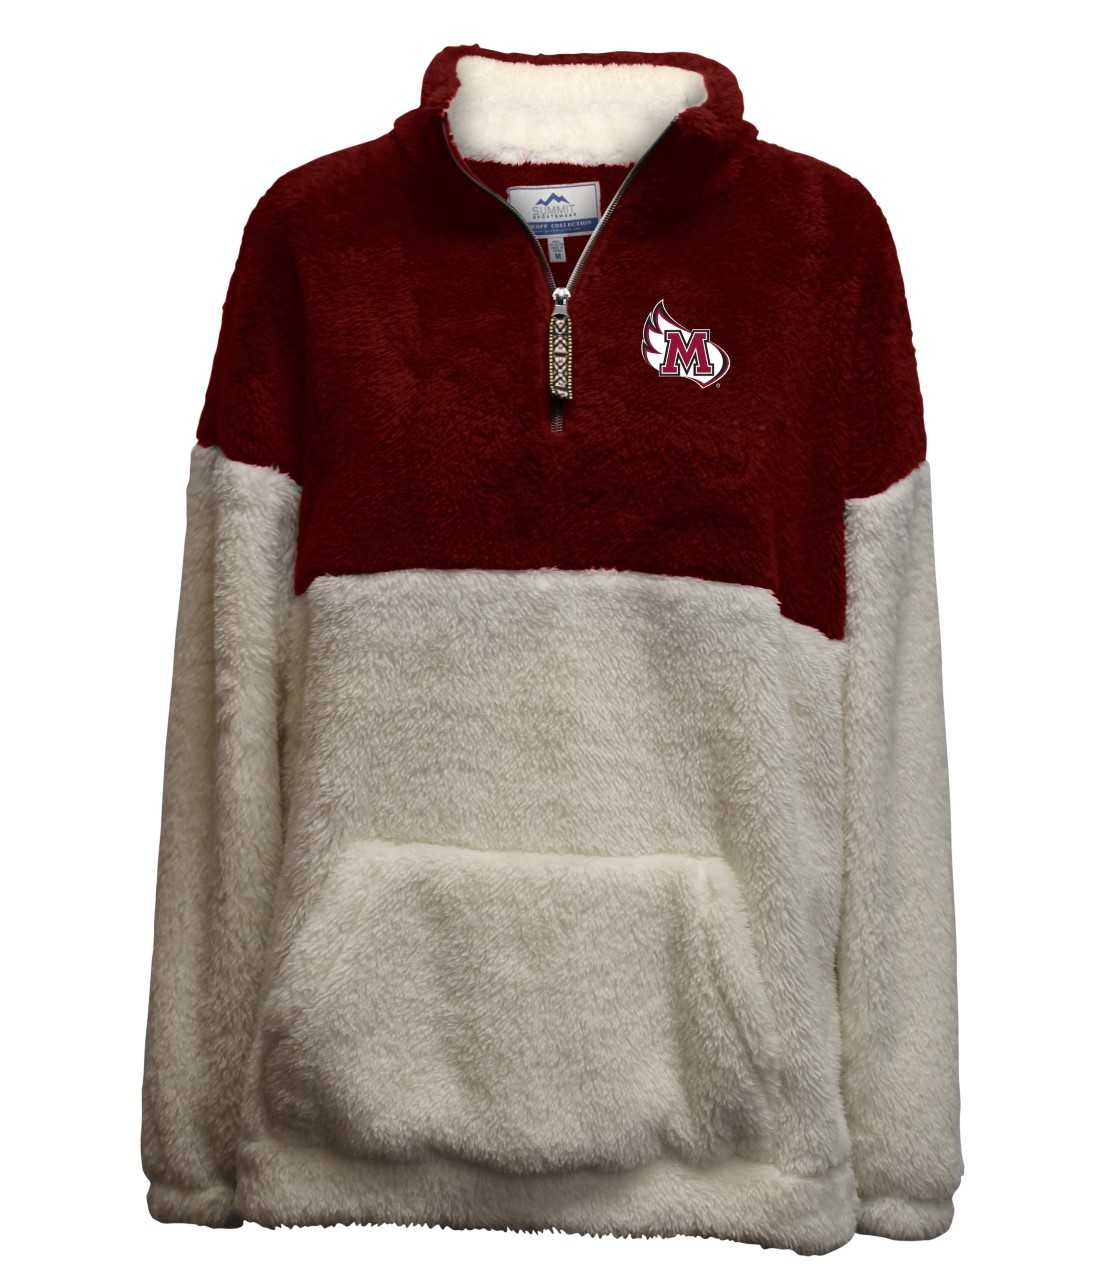 Image for the Double Plush Drop Shoulder 1/4 Zip, Maroon and Cream product